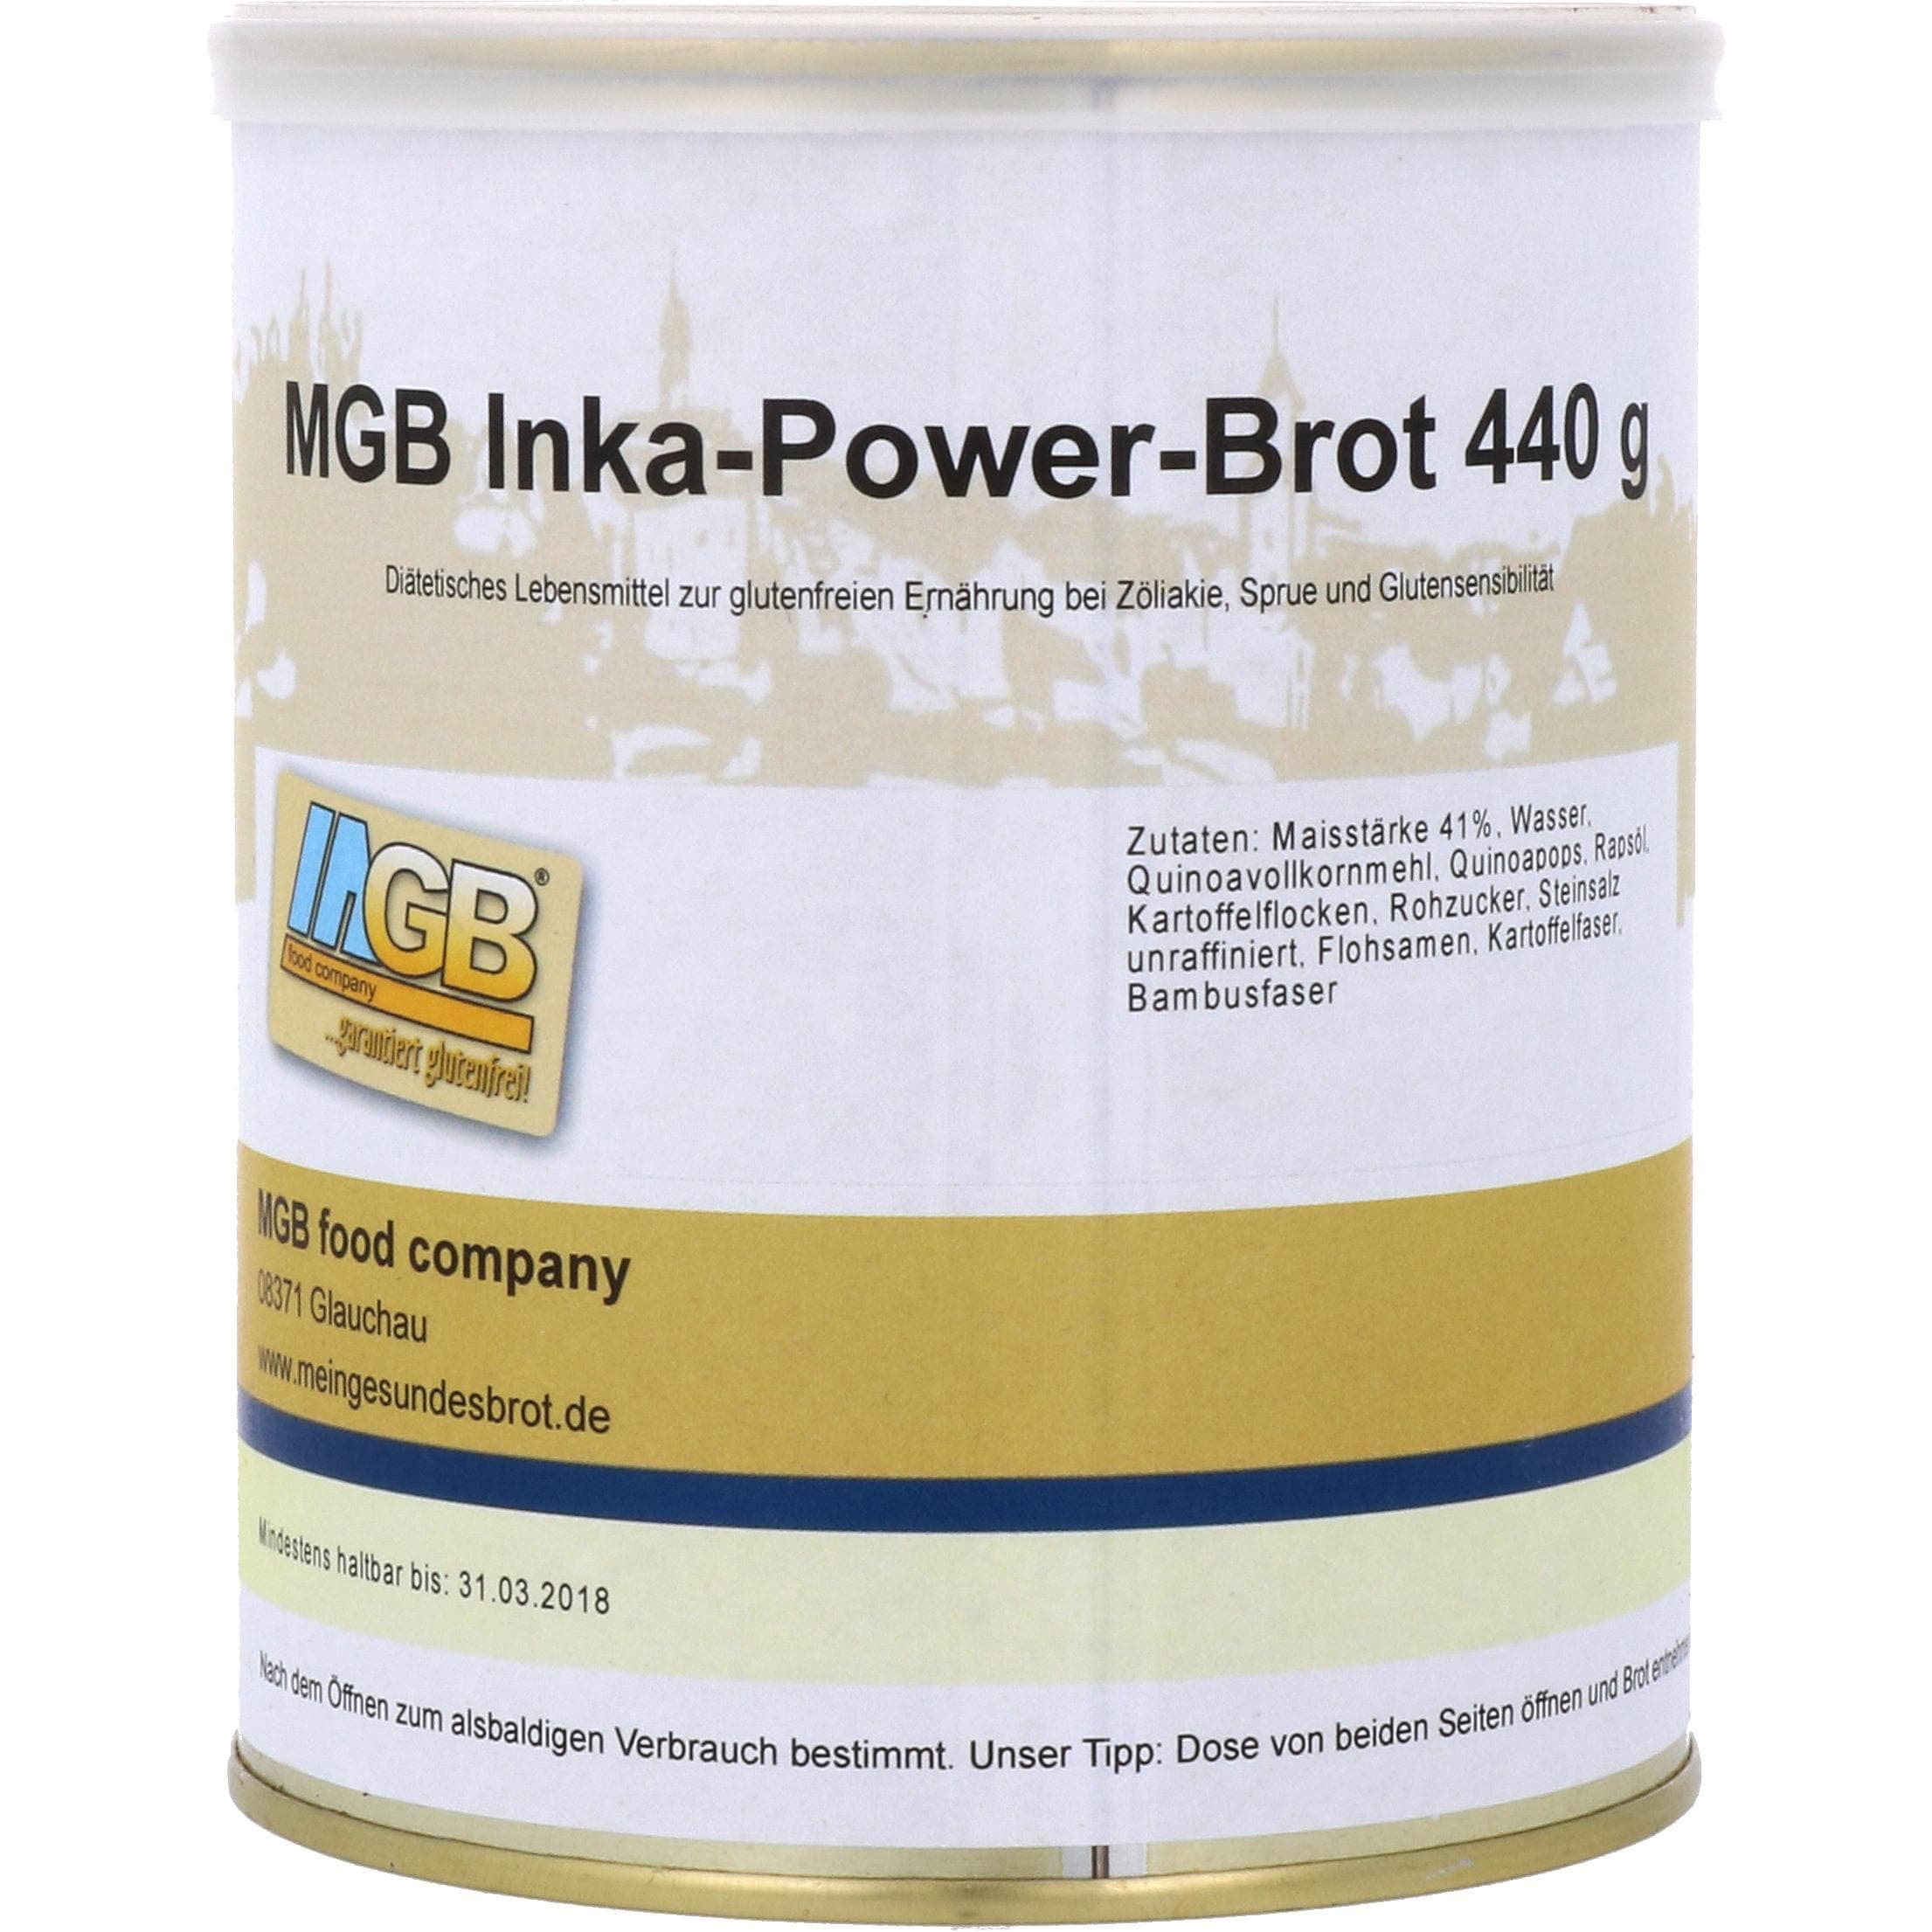 MGB food company Inka-Power-Brot, glutenfreies Brot 440g